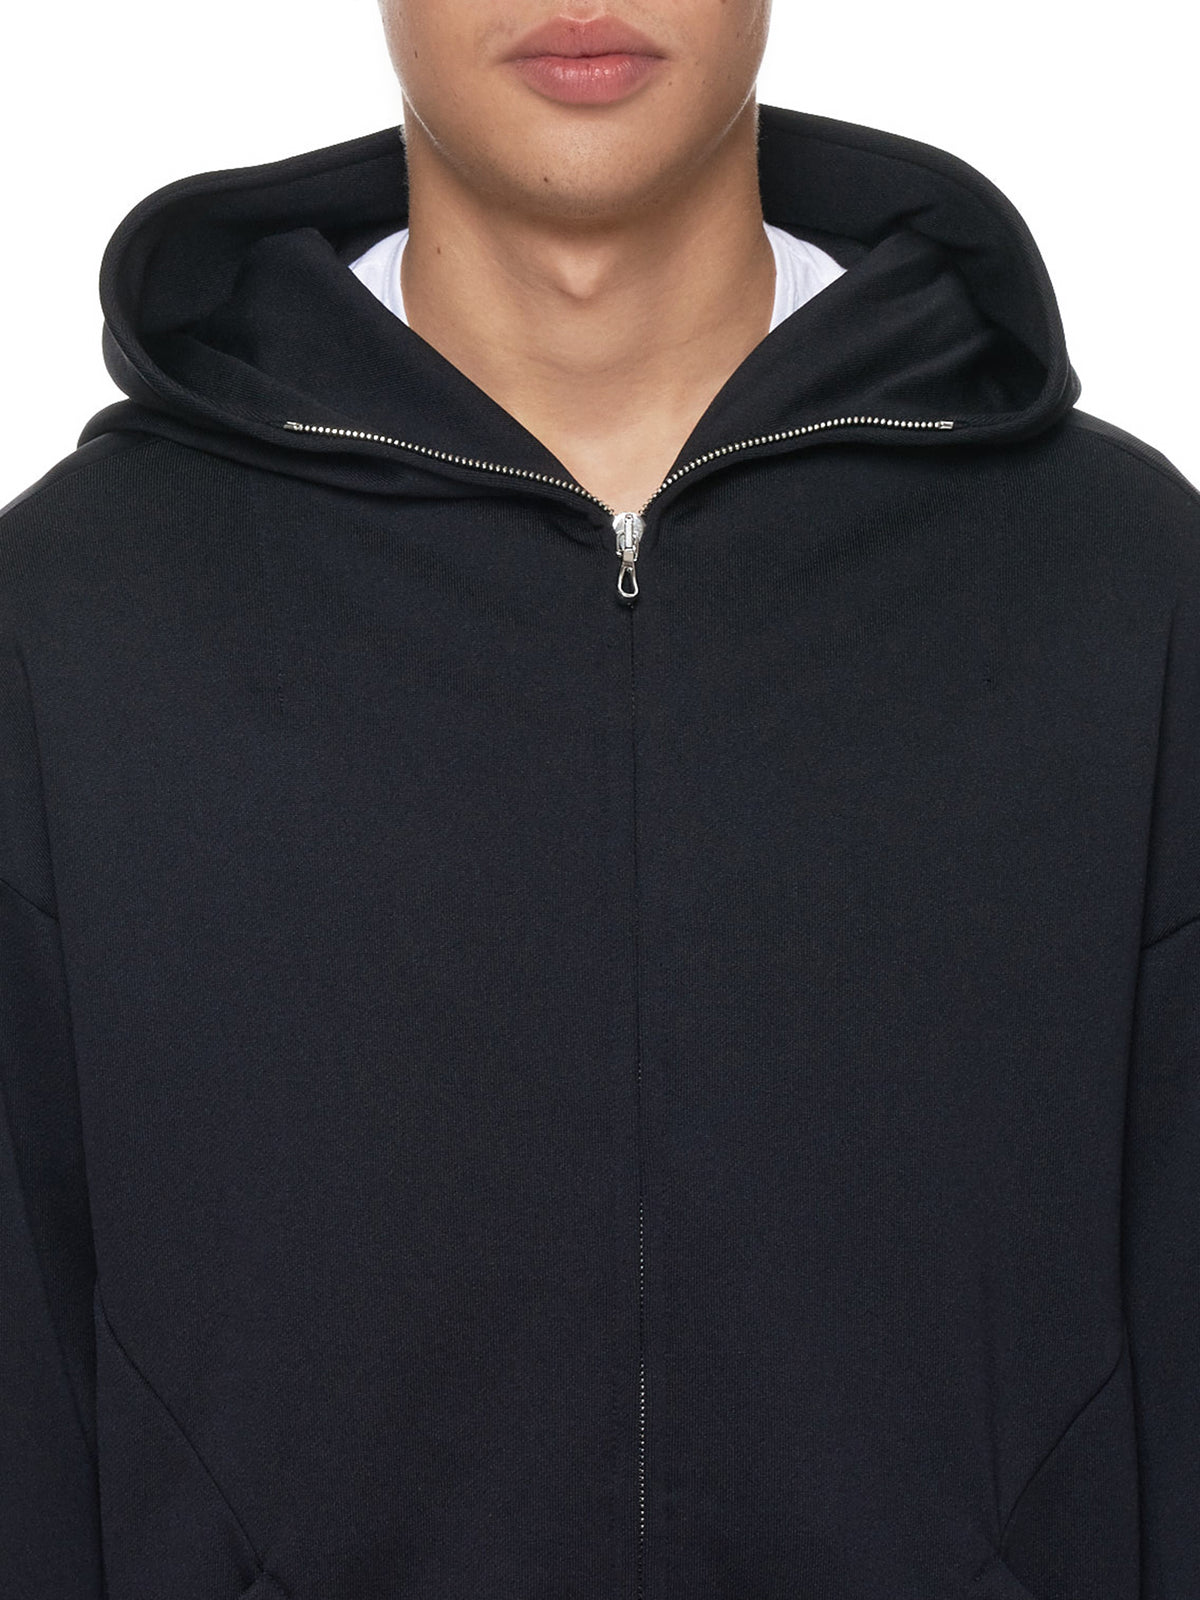 Attachment Kazuyuki Kumagai Hoodie - Hlorenzo Detail 2